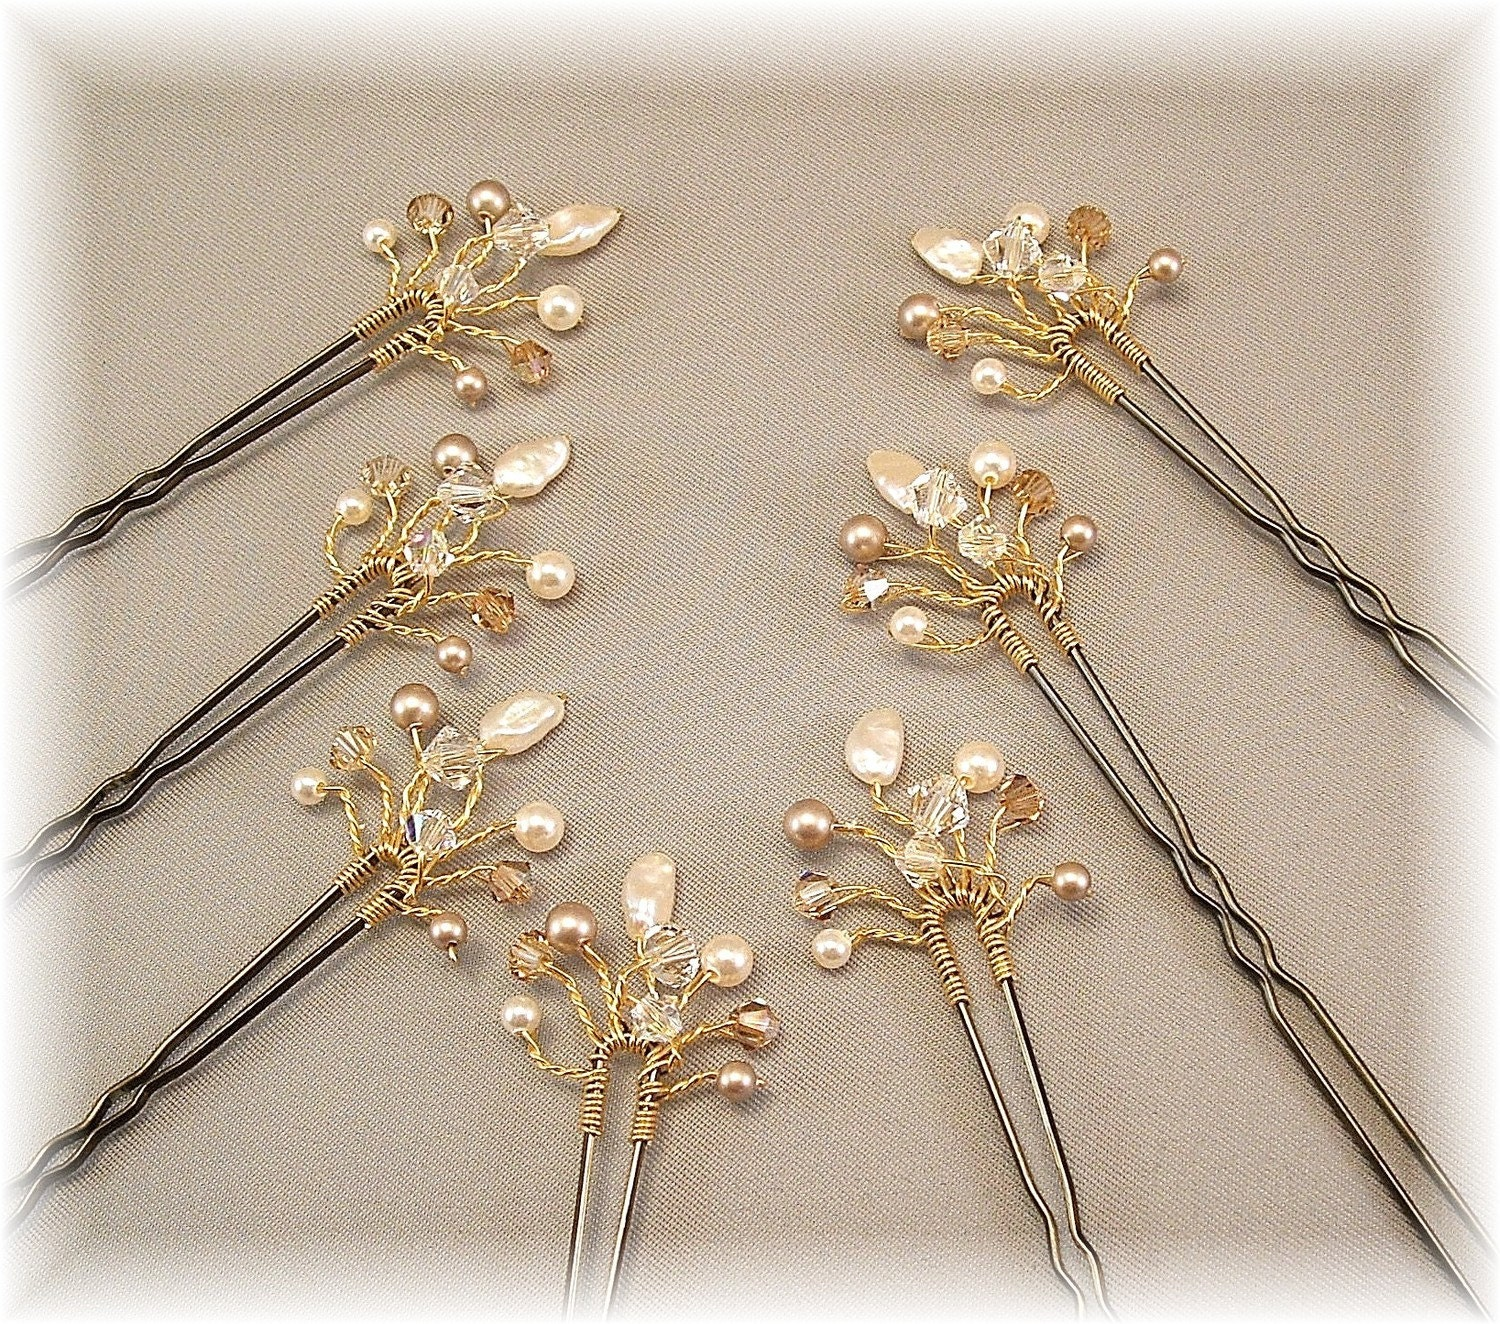 Wedding Hair Accessories Bridal Hair Pins Golden by Handwired from etsy.com